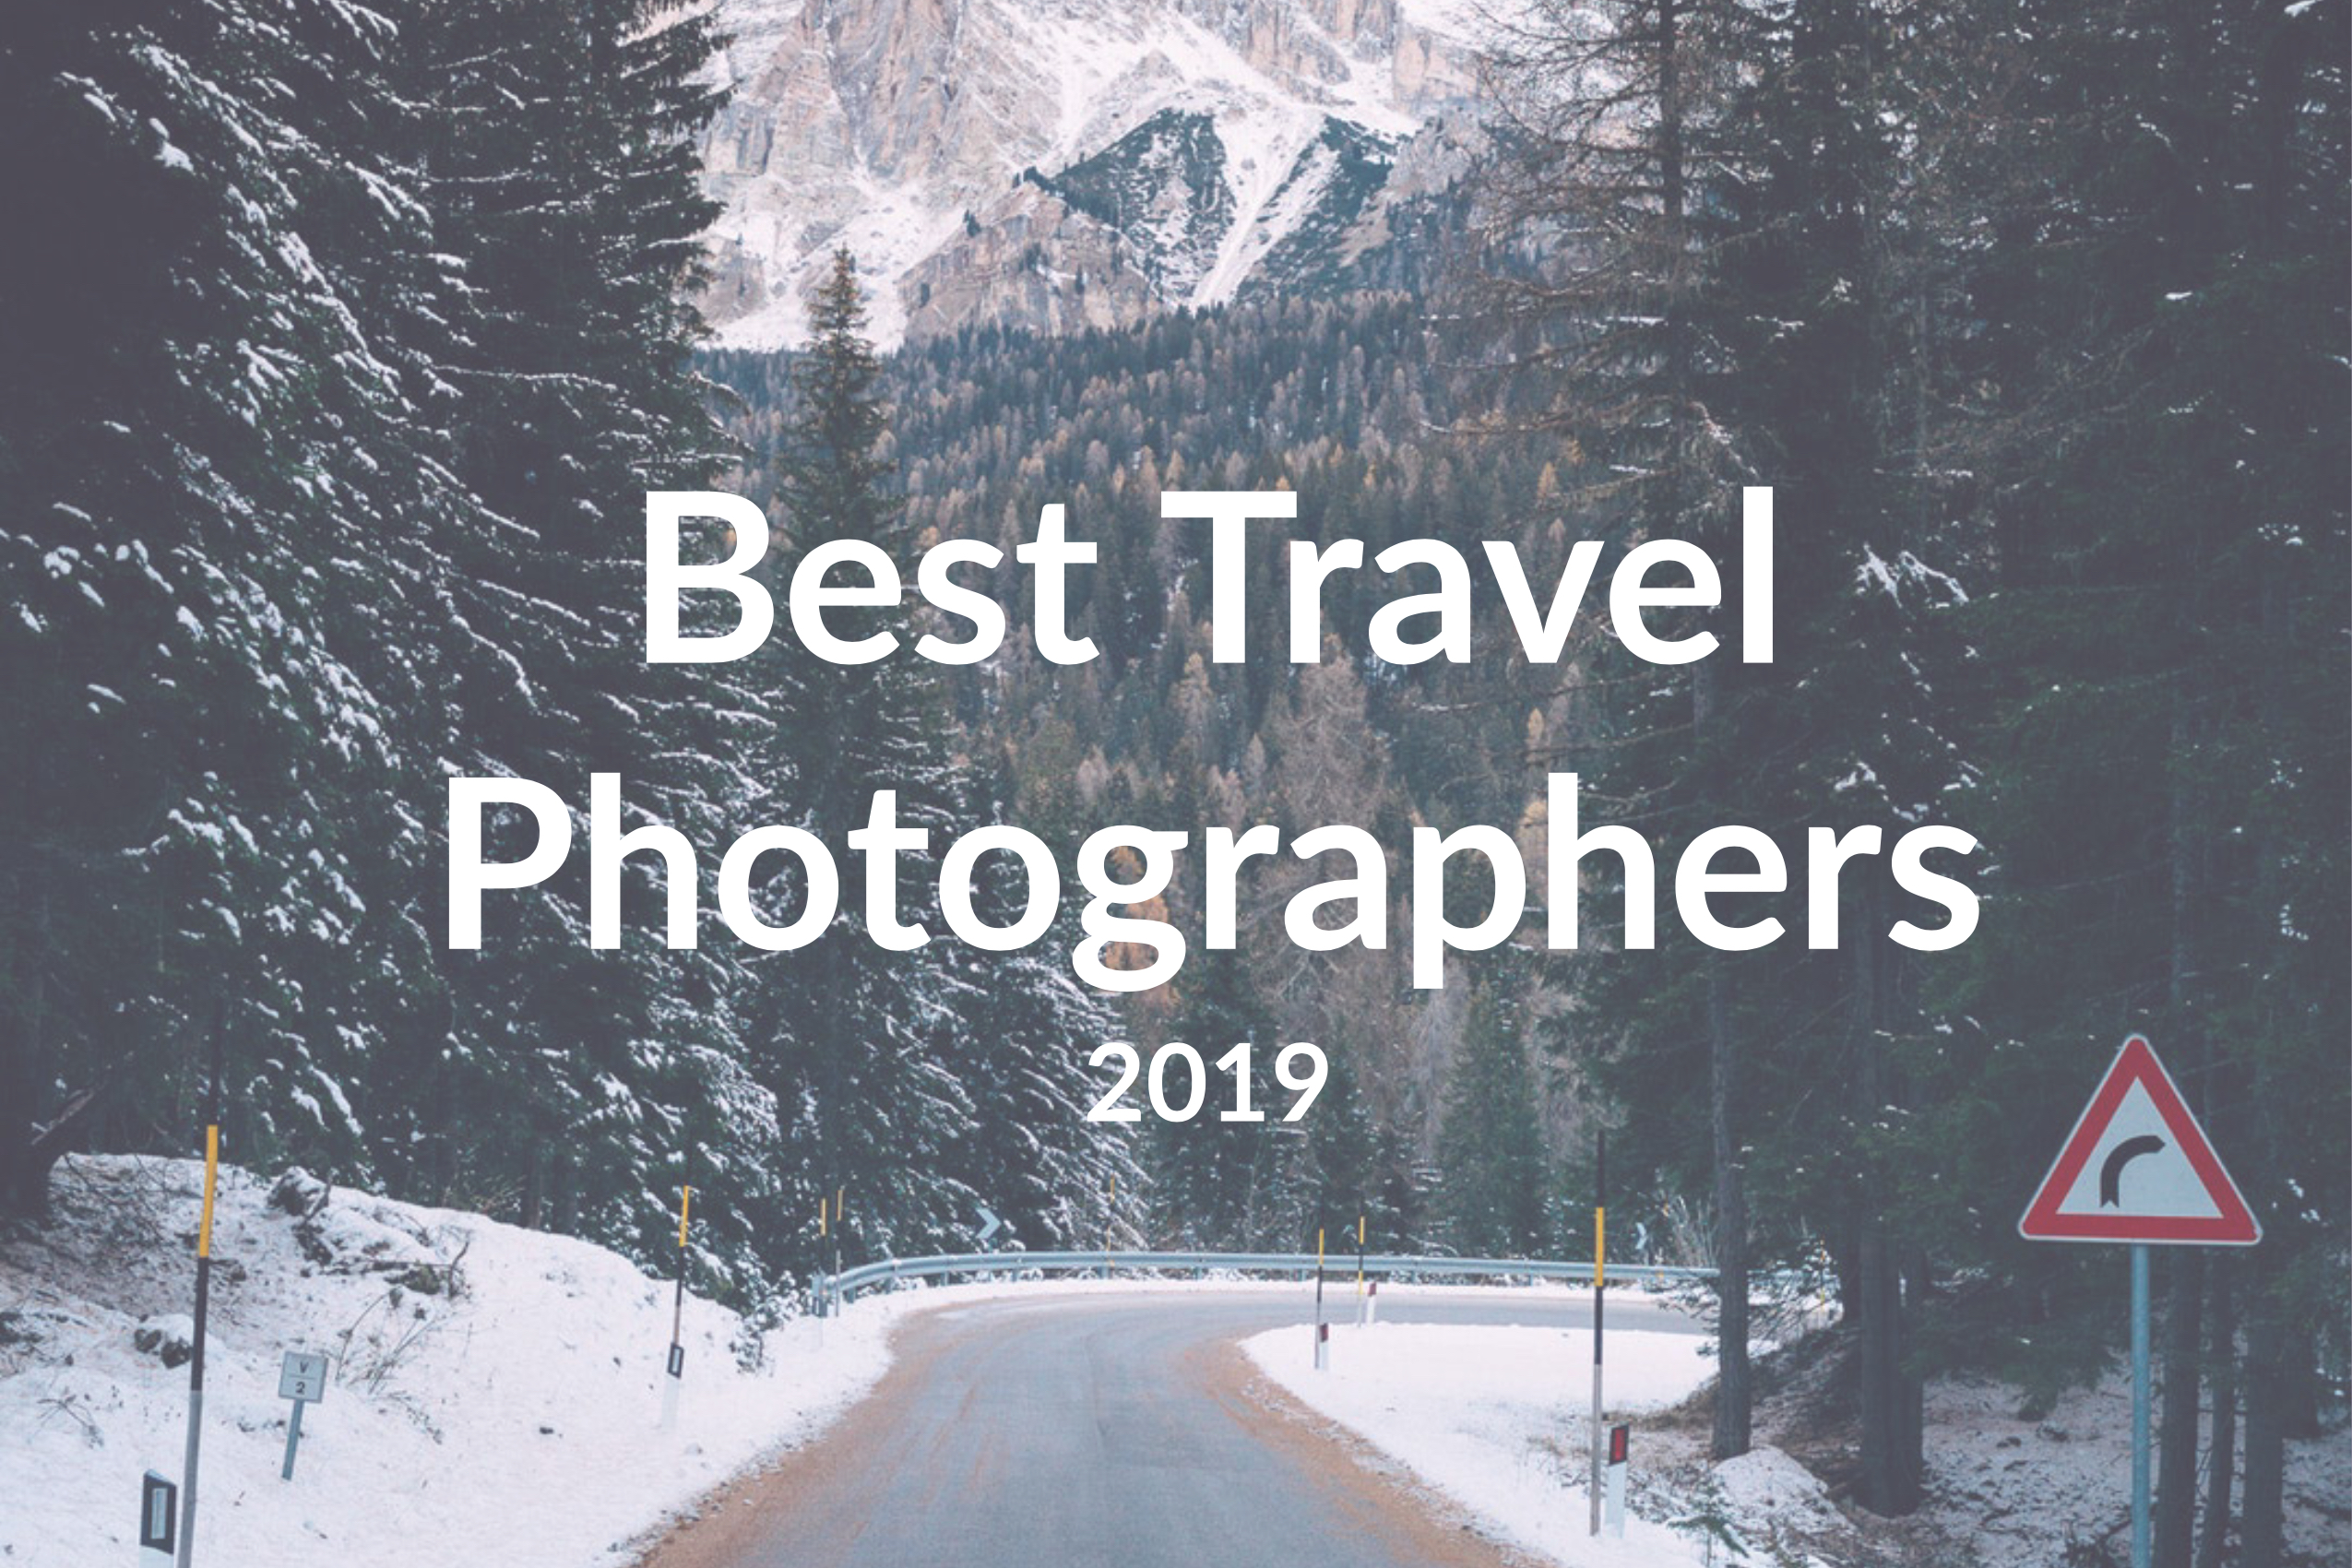 The 7 Best Travel Photographers to Follow in 2019